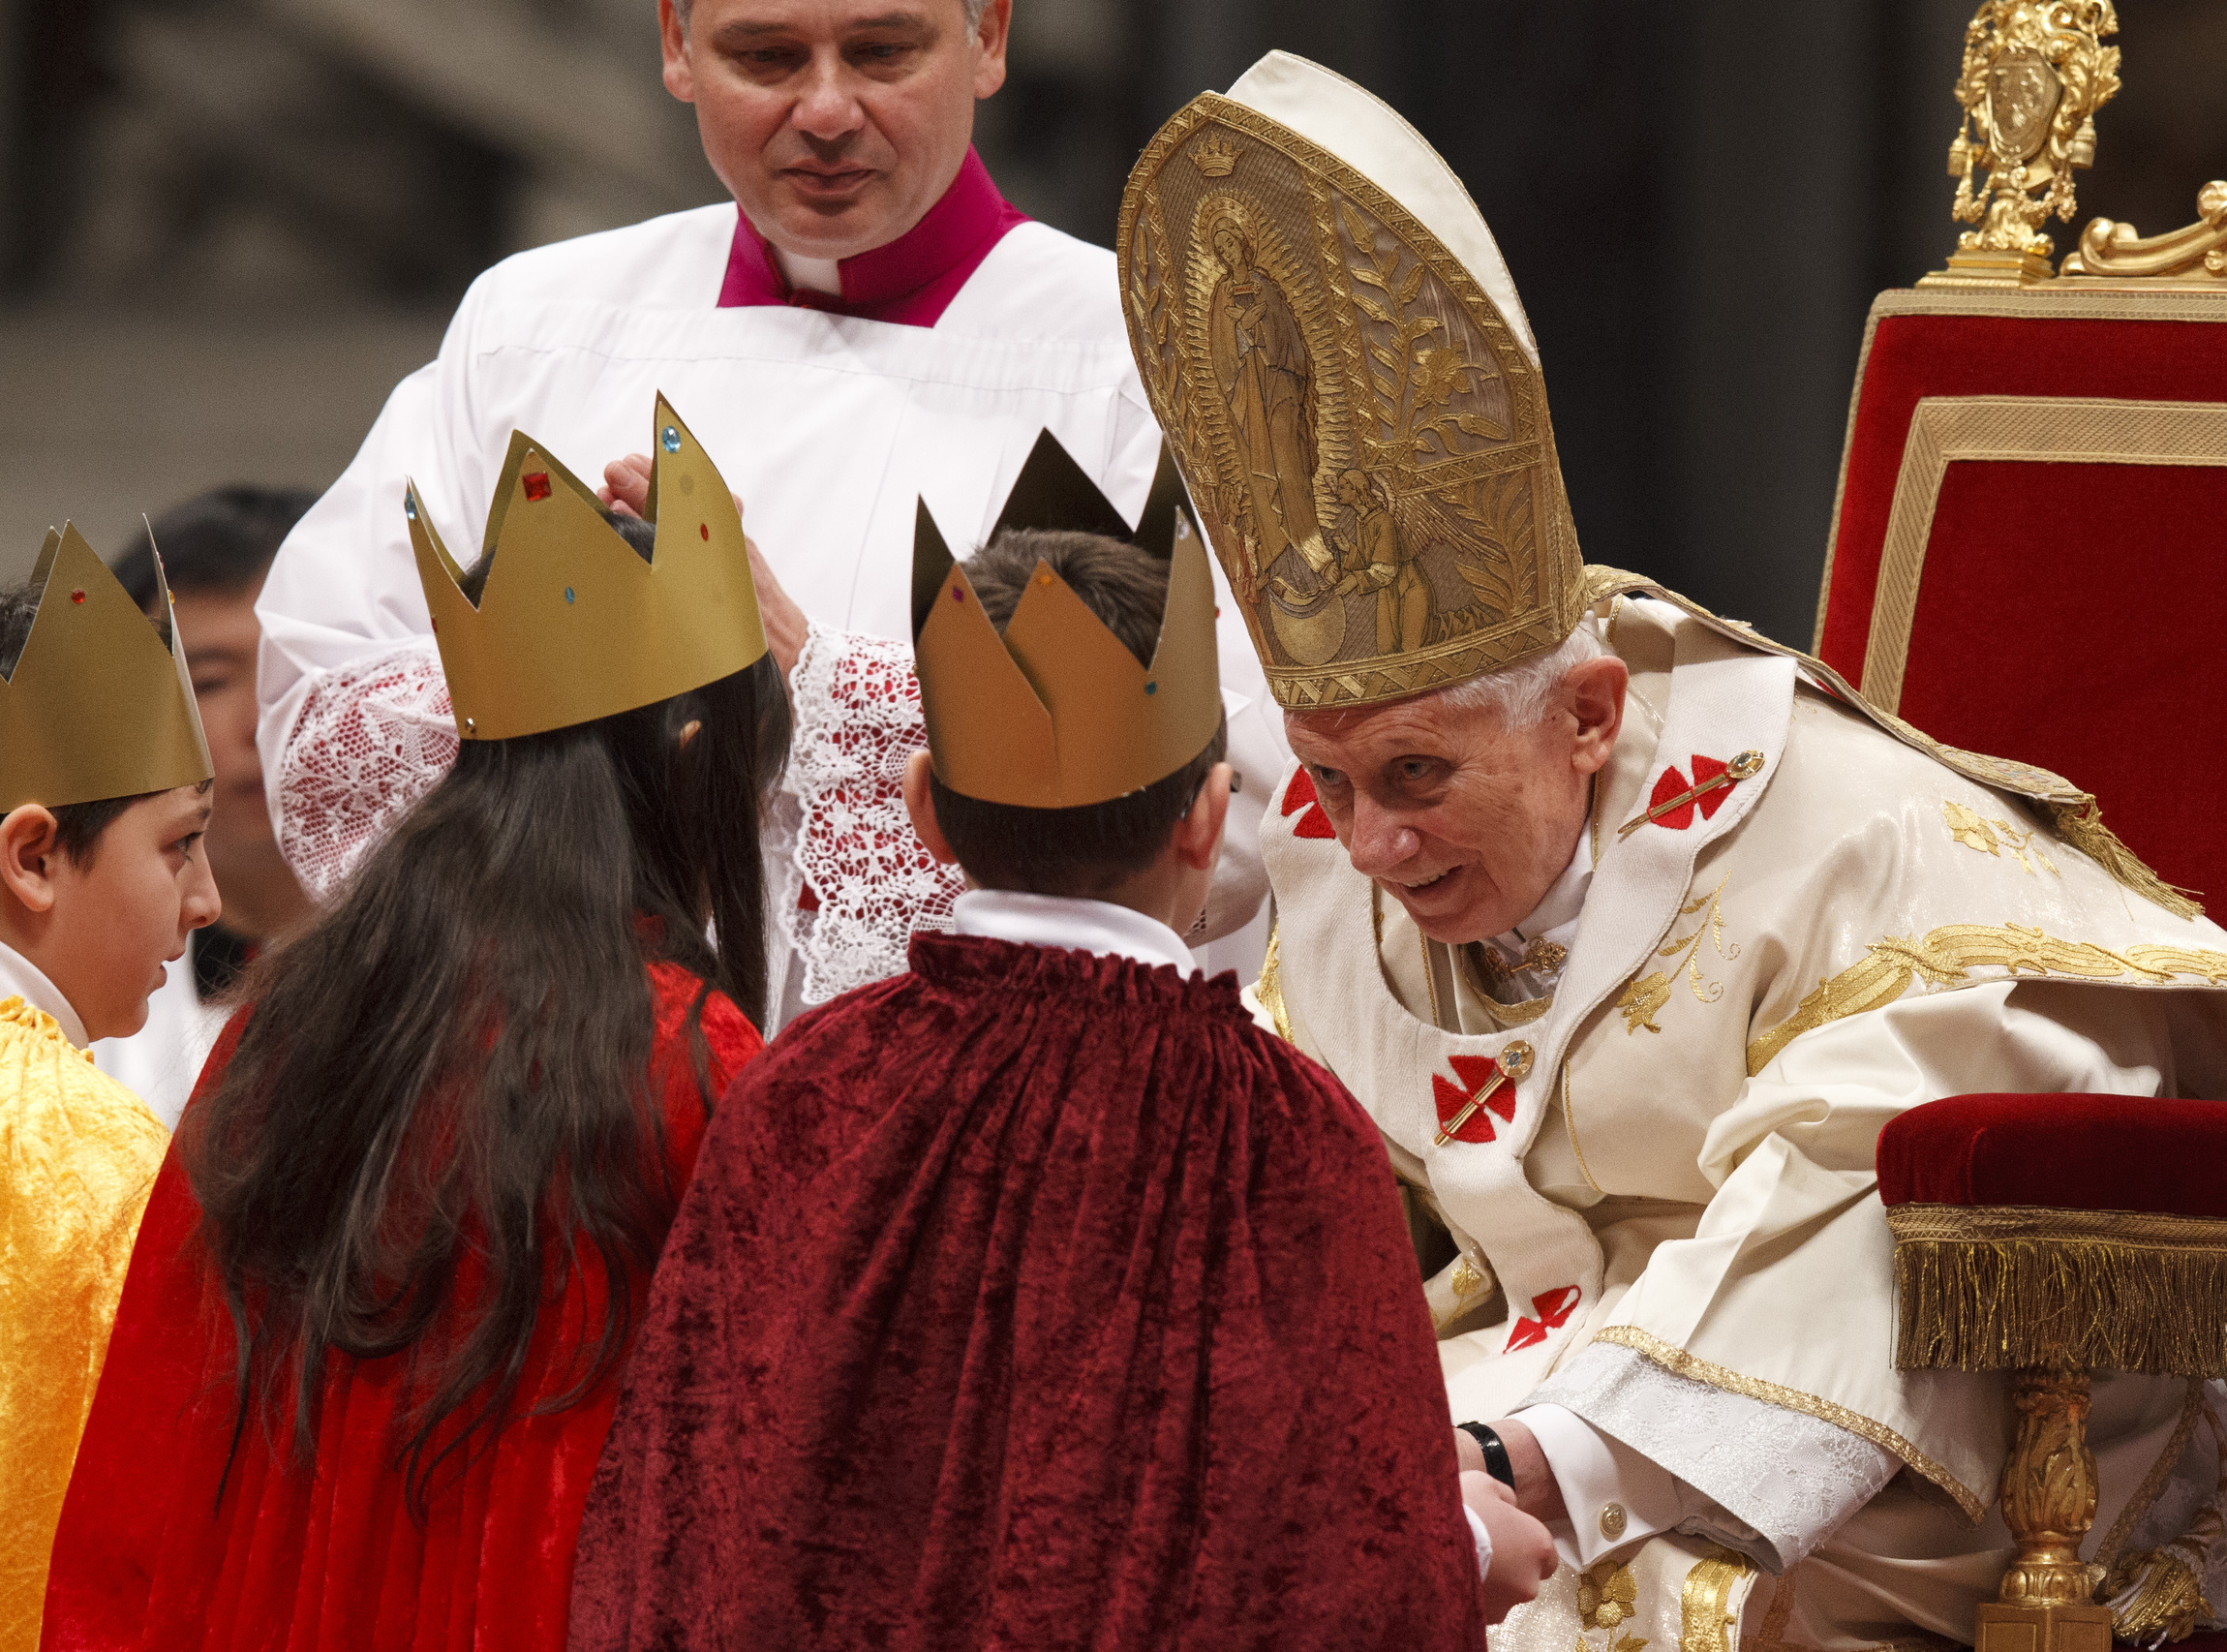 Papal blessing certificate for 50th wedding anniversary